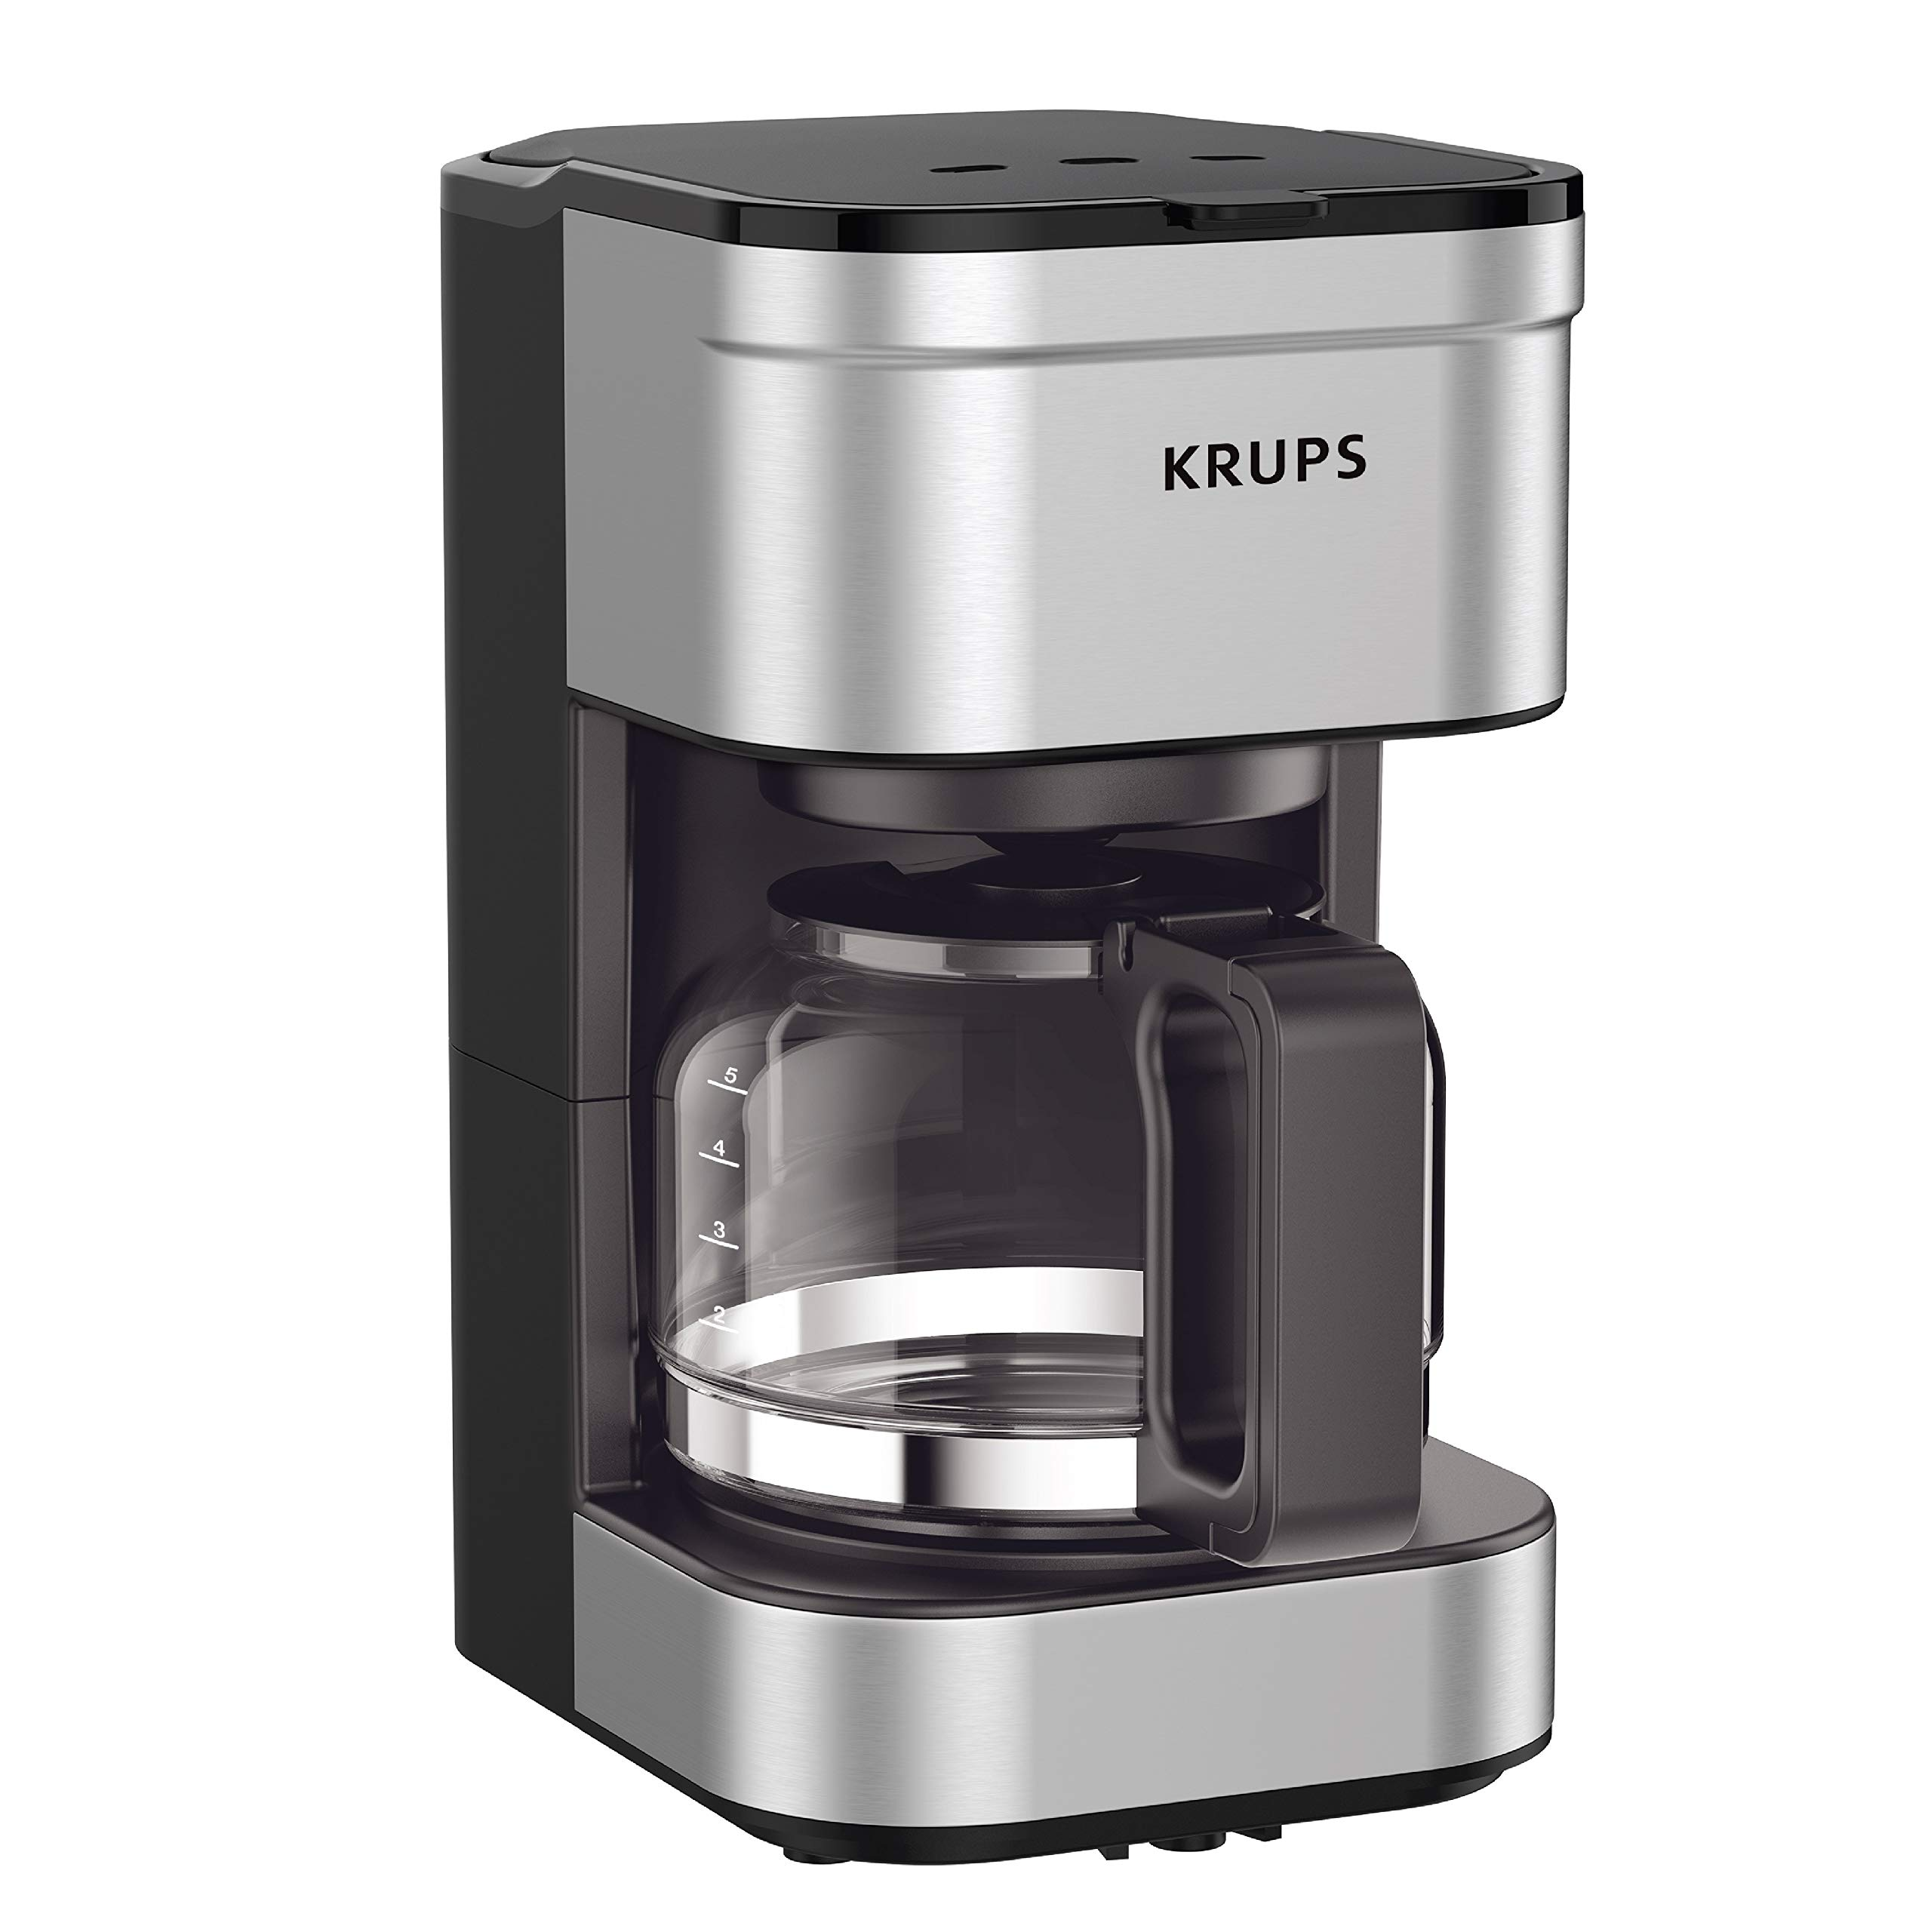 KRUPS KM202850 Simply Brew Compact Filter Drip Coffee Maker, 5-Cup, Silver by KRUPS